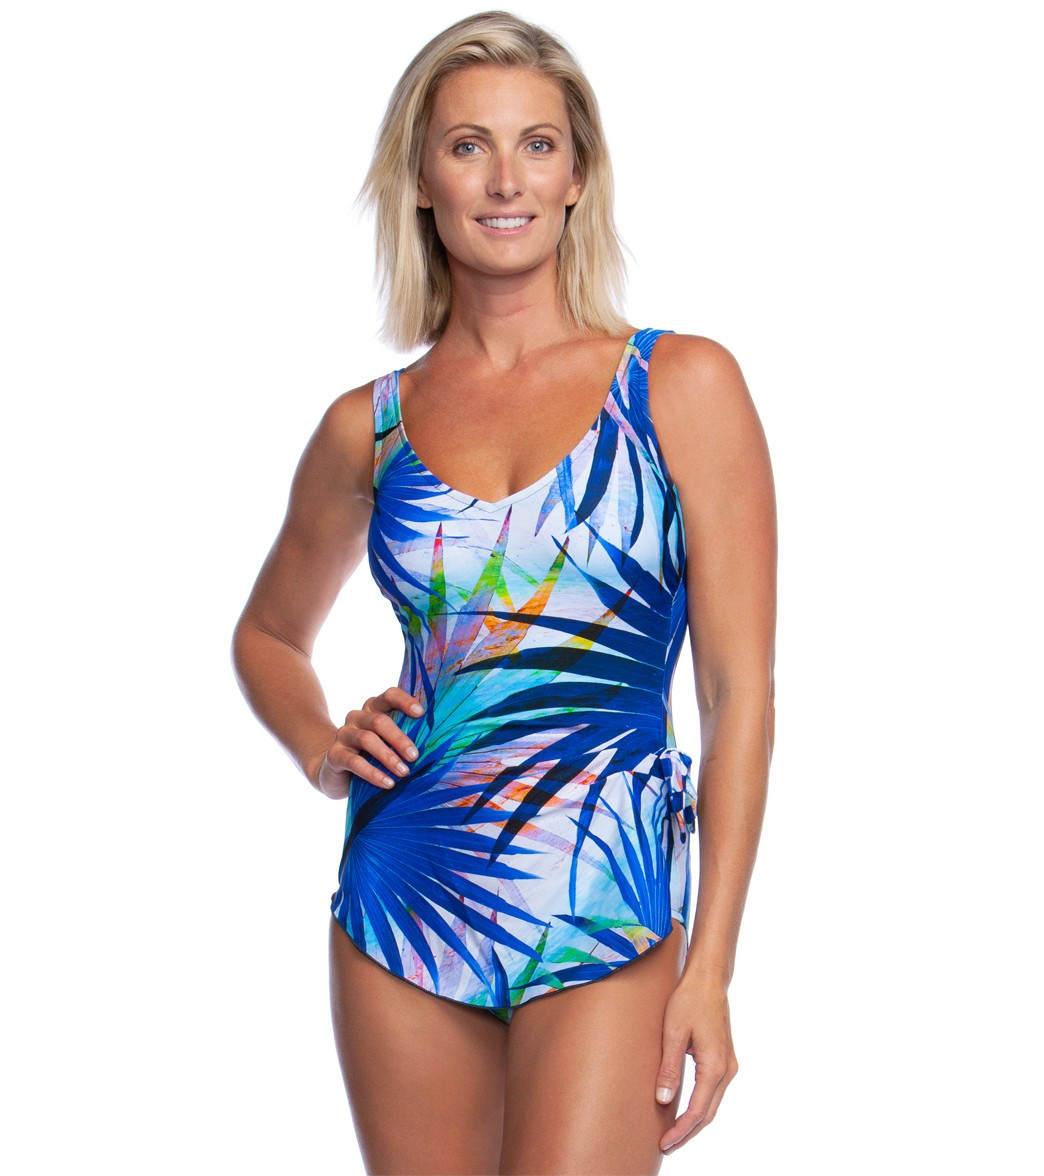 c9cde87dd691b Maxine Palm Party Sarong One Piece Swimsuit at SwimOutlet.com - Free  Shipping